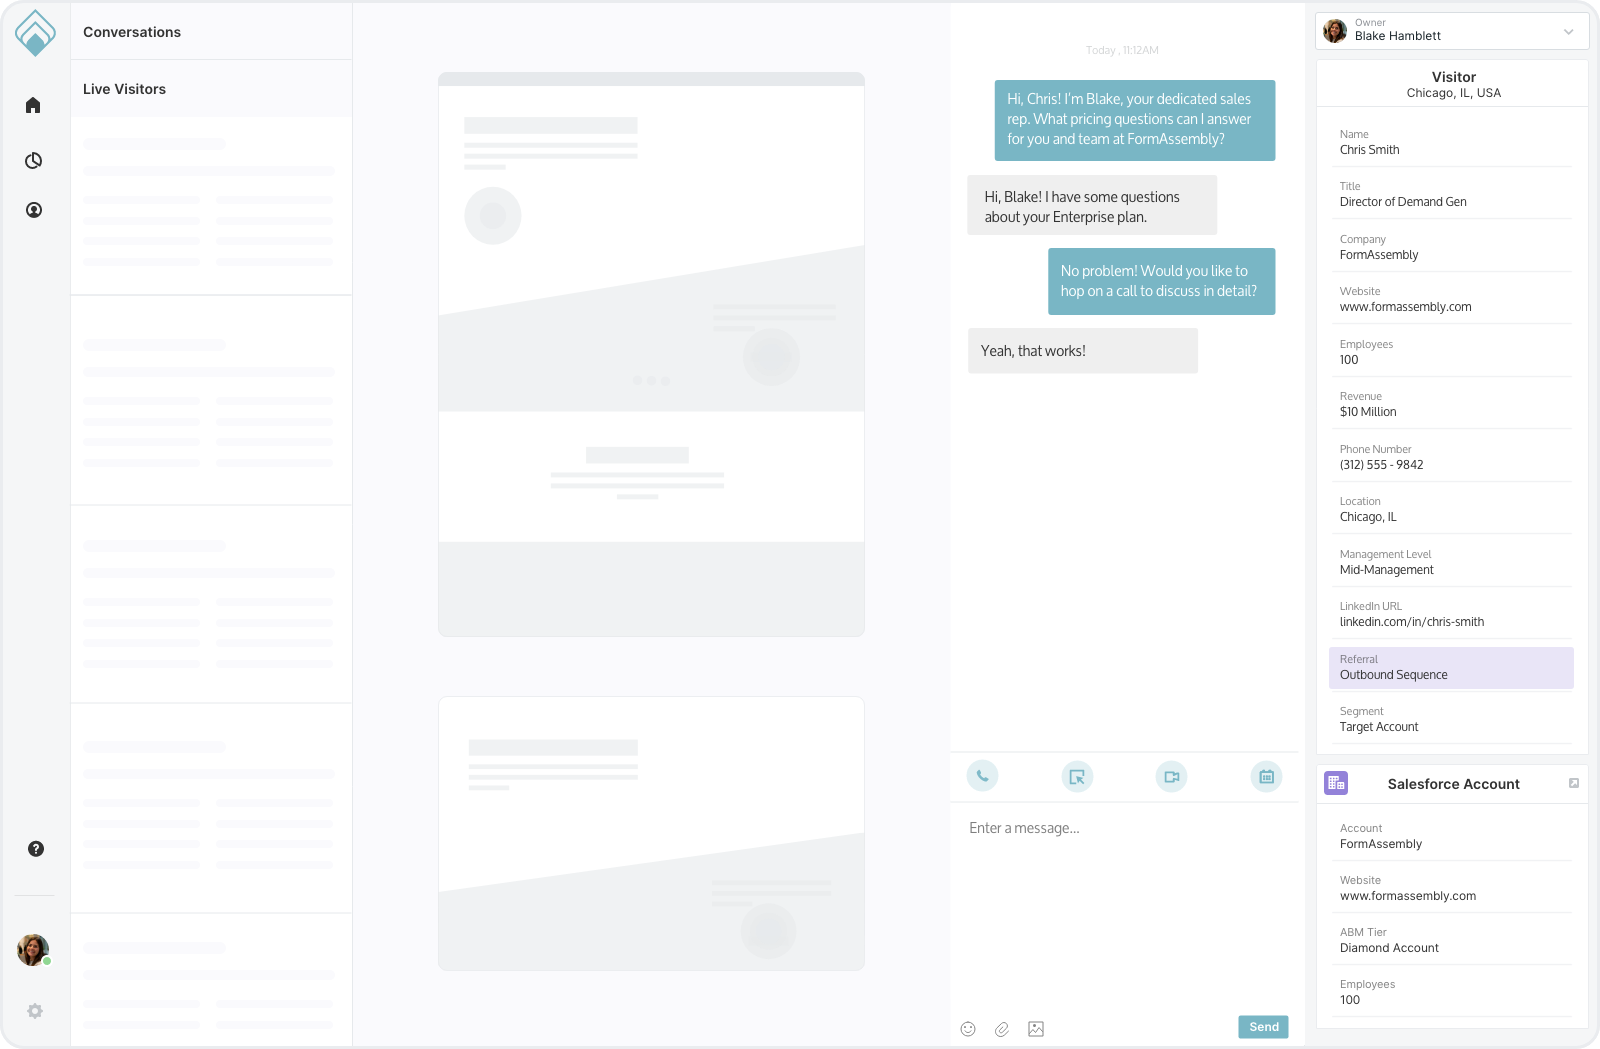 conversational marketing dashboard view of a prospect